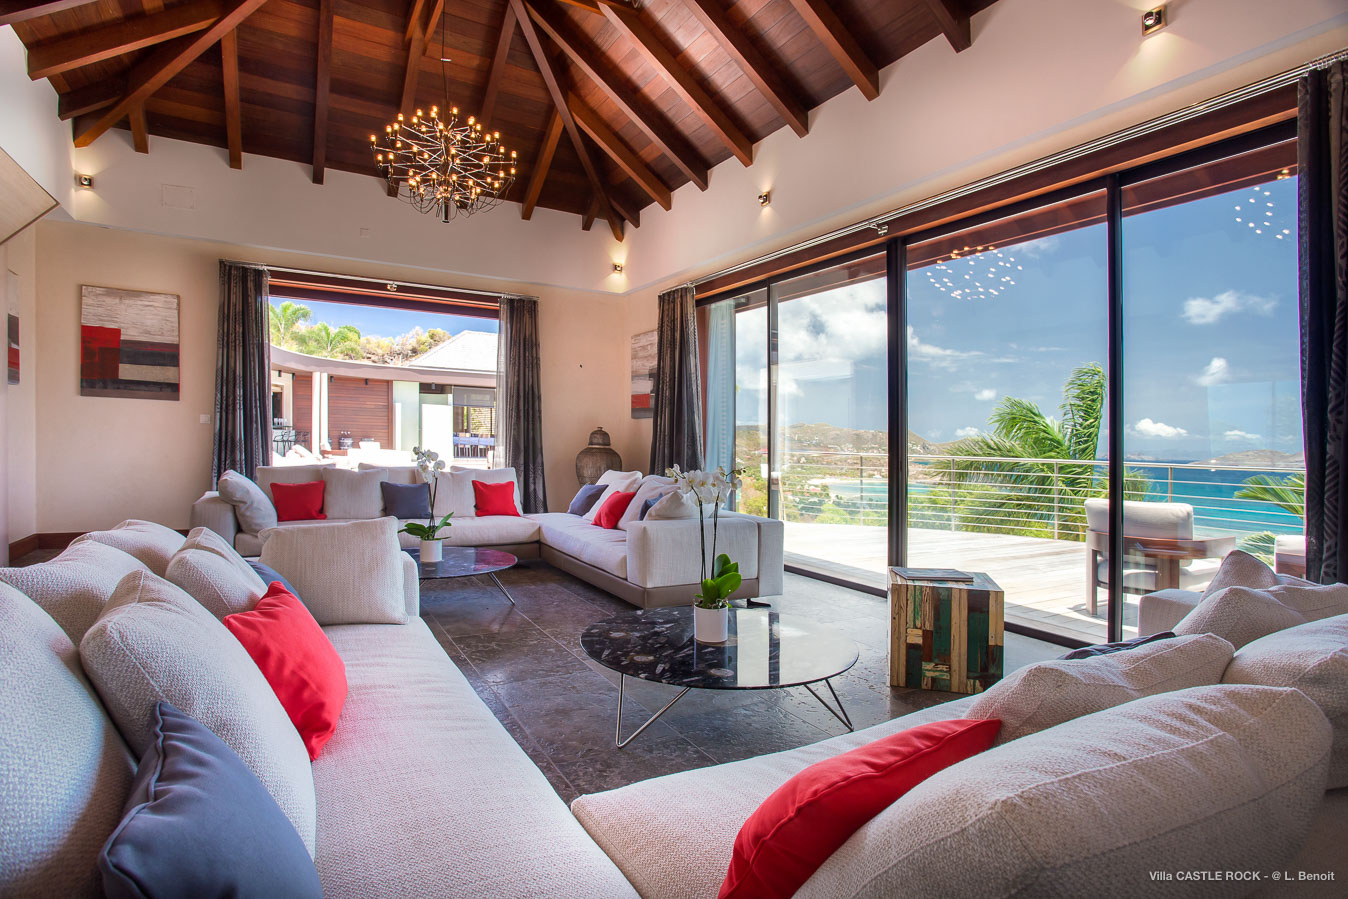 Villa Castle Rock - Magnificent Villa for Rent Situated on the Hillside of Lorient St Barth - Living room